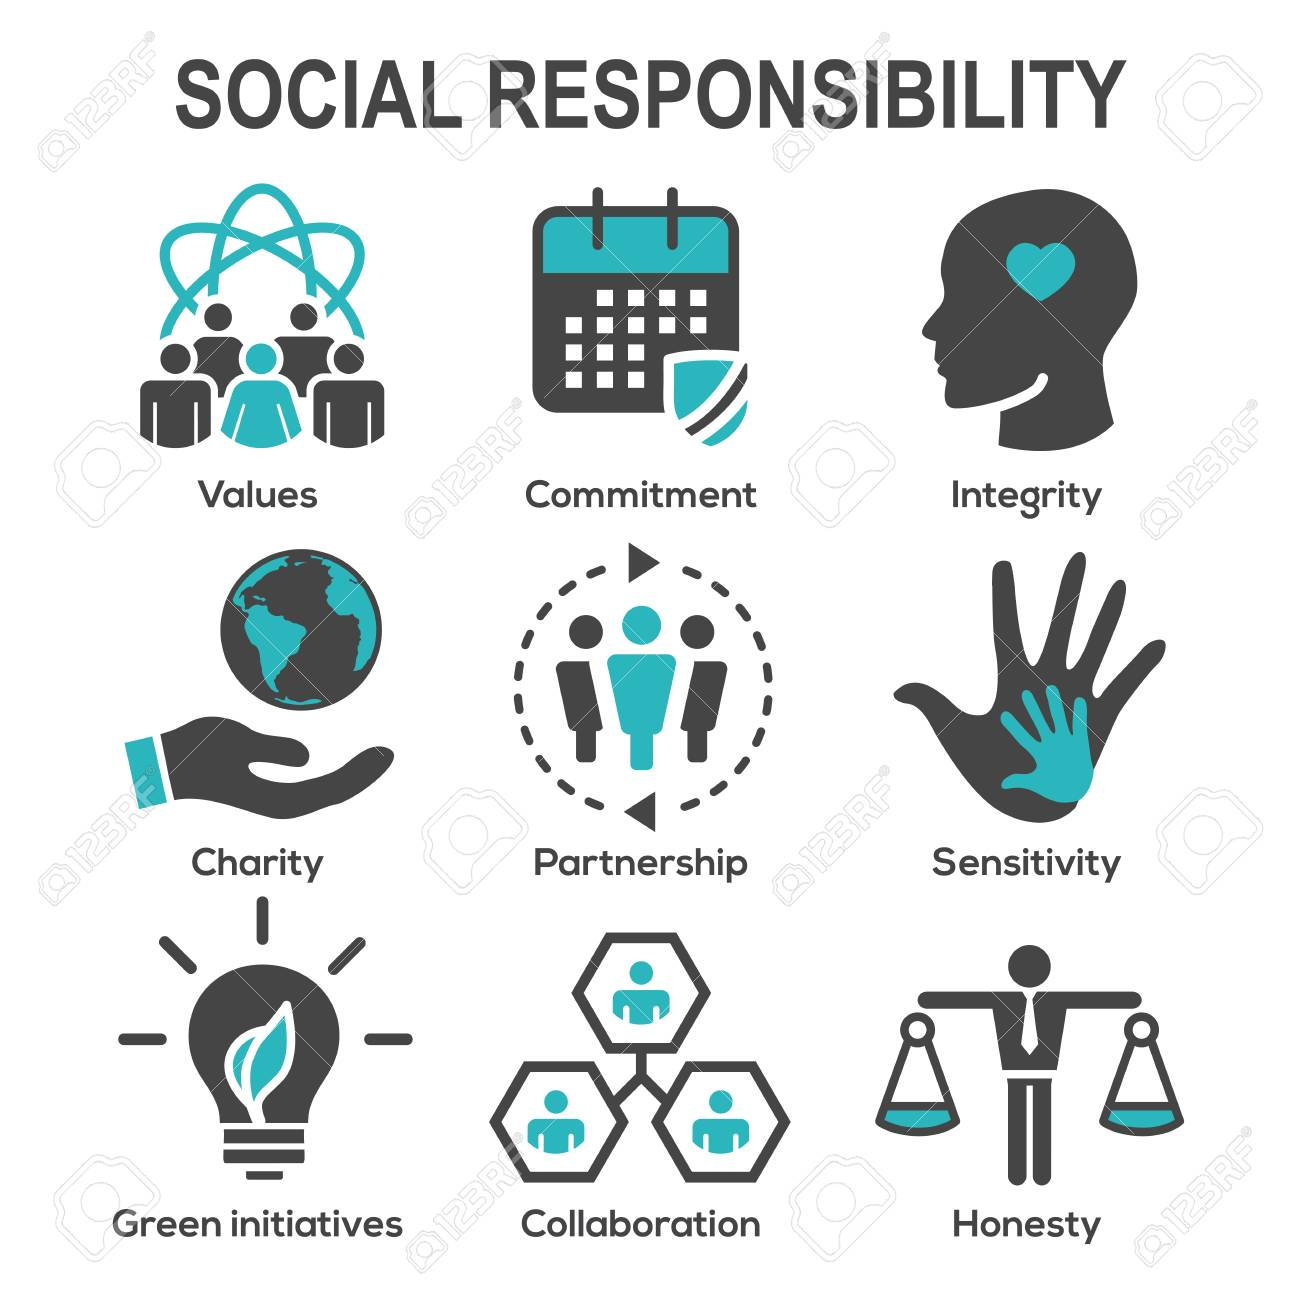 Social Responsibility Solid Icon Set with Honesty, integrity, collaboration, etc - 97387263